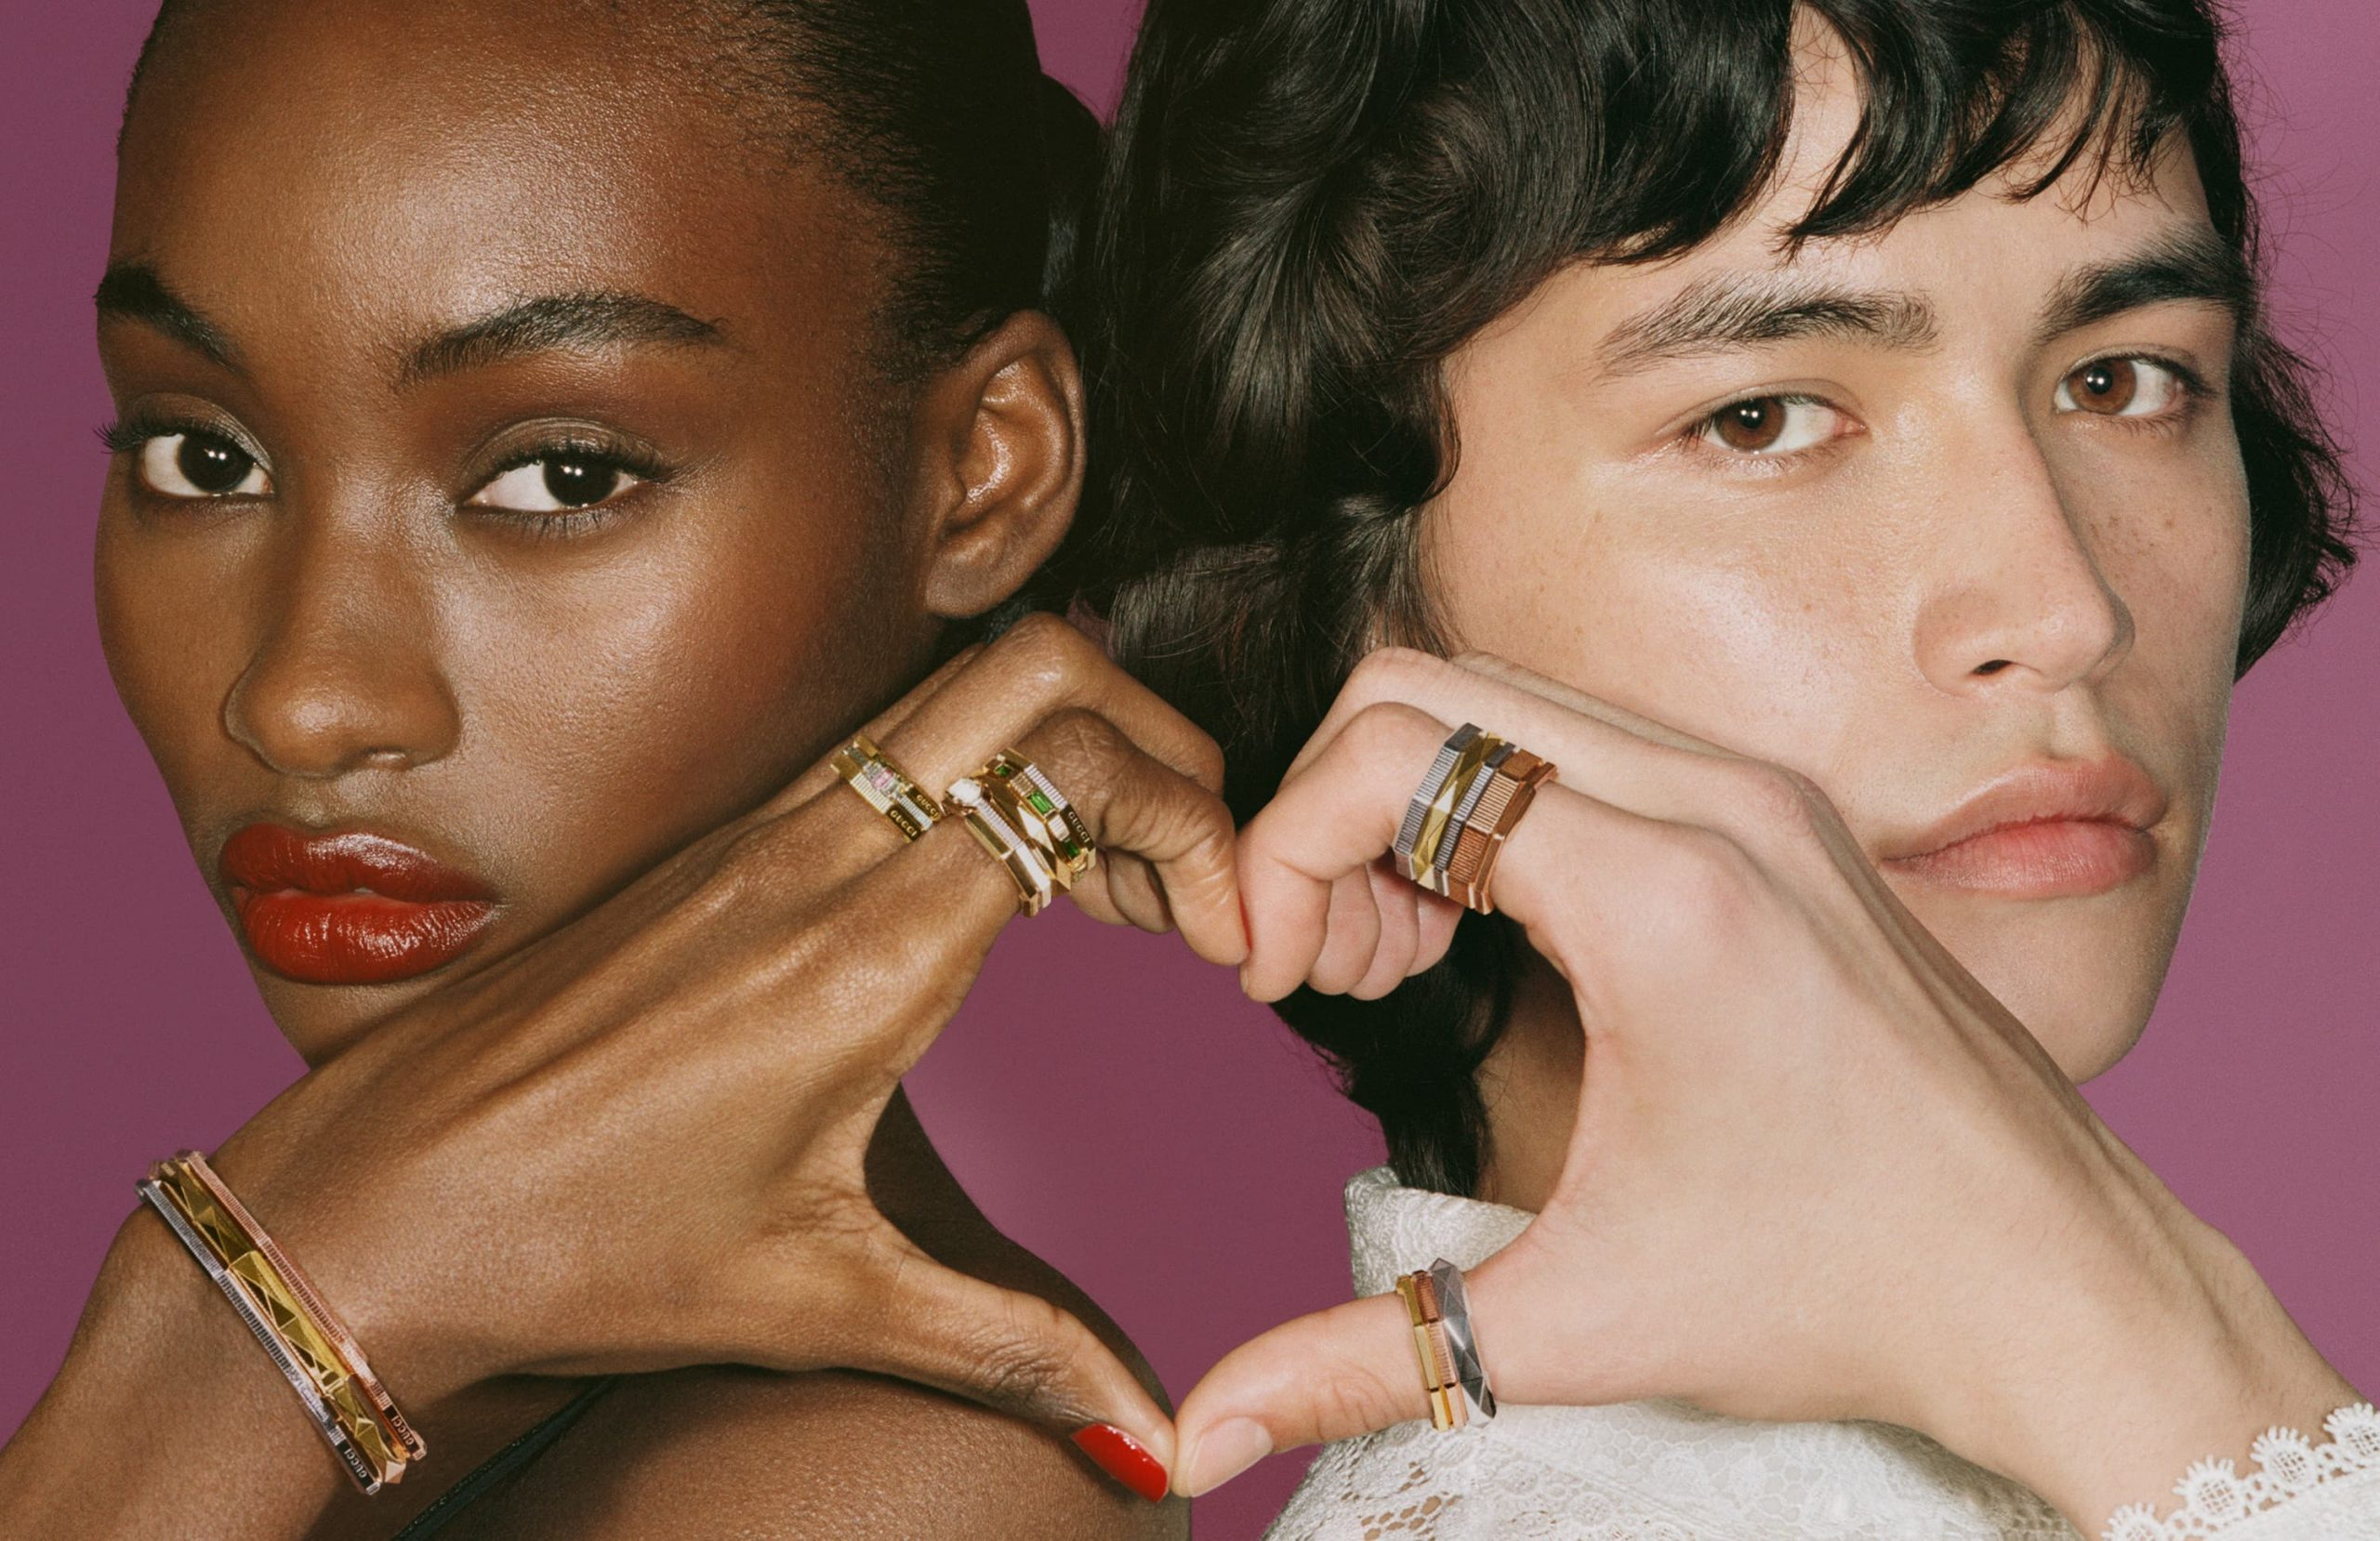 Gucci Jewelry 'Link To Love' Summer 2021 Ad Campaign Photos